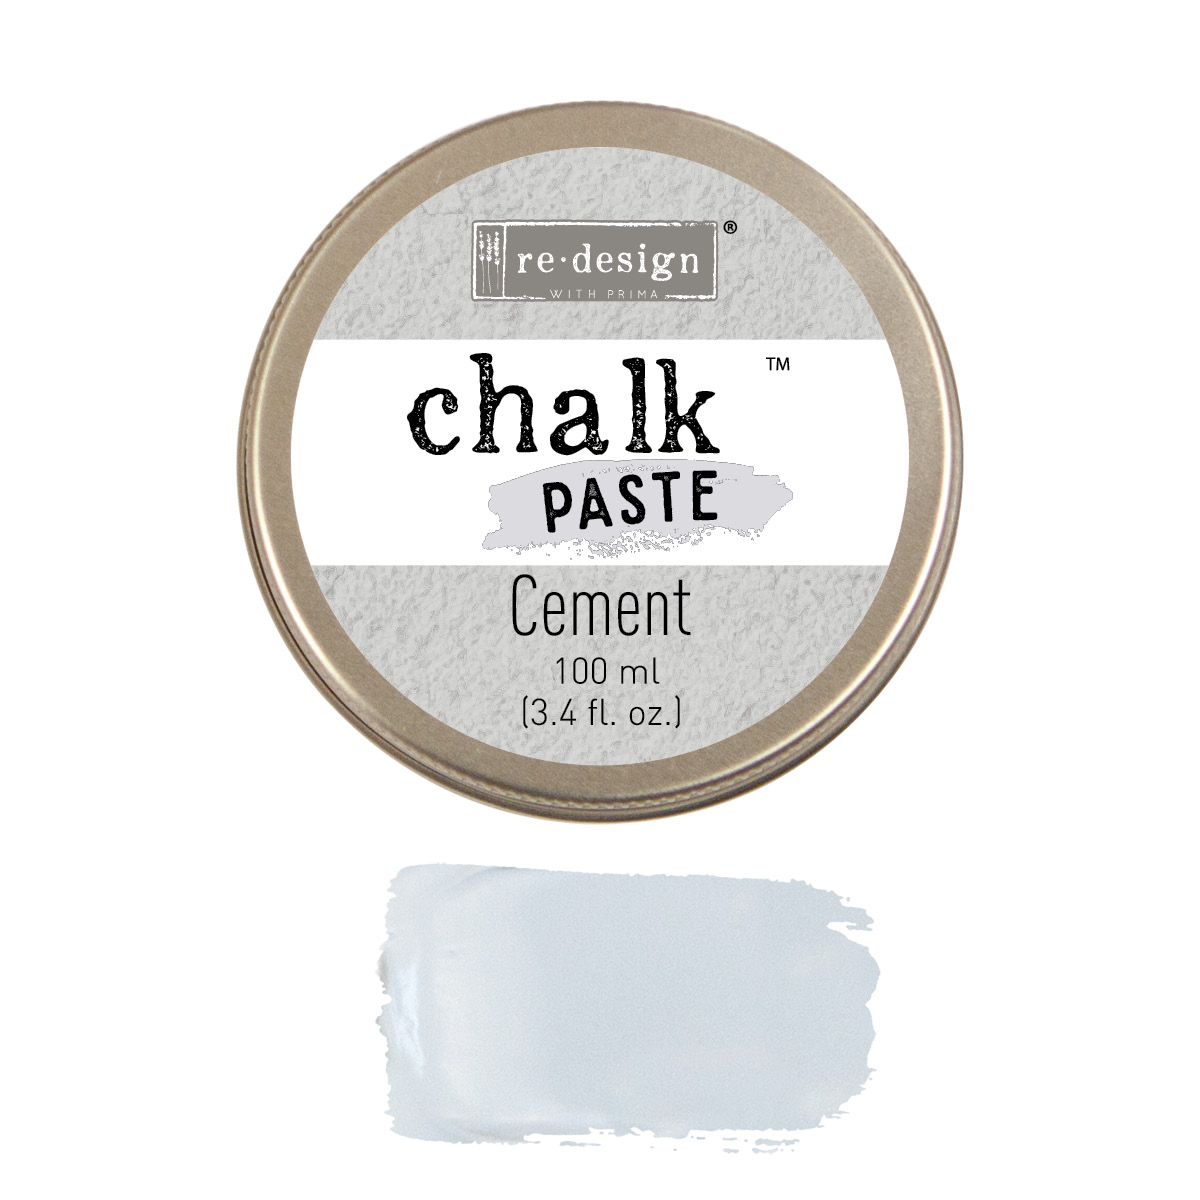 Cement-Chalk Paste®  Here is a video showing all the applications and steps to recreate this sign. It was so fun and easy to do. The Stick and Style Stencil Roll allowed us to add the design without worry of the frame-it just folds up to it so that your pattern is in place and you get a crisp image next to the edge too. Use the stencil strip up to 6 or 7 times and then discard. Each roll comes with 15 yards of stencil, plenty to use on many projects…